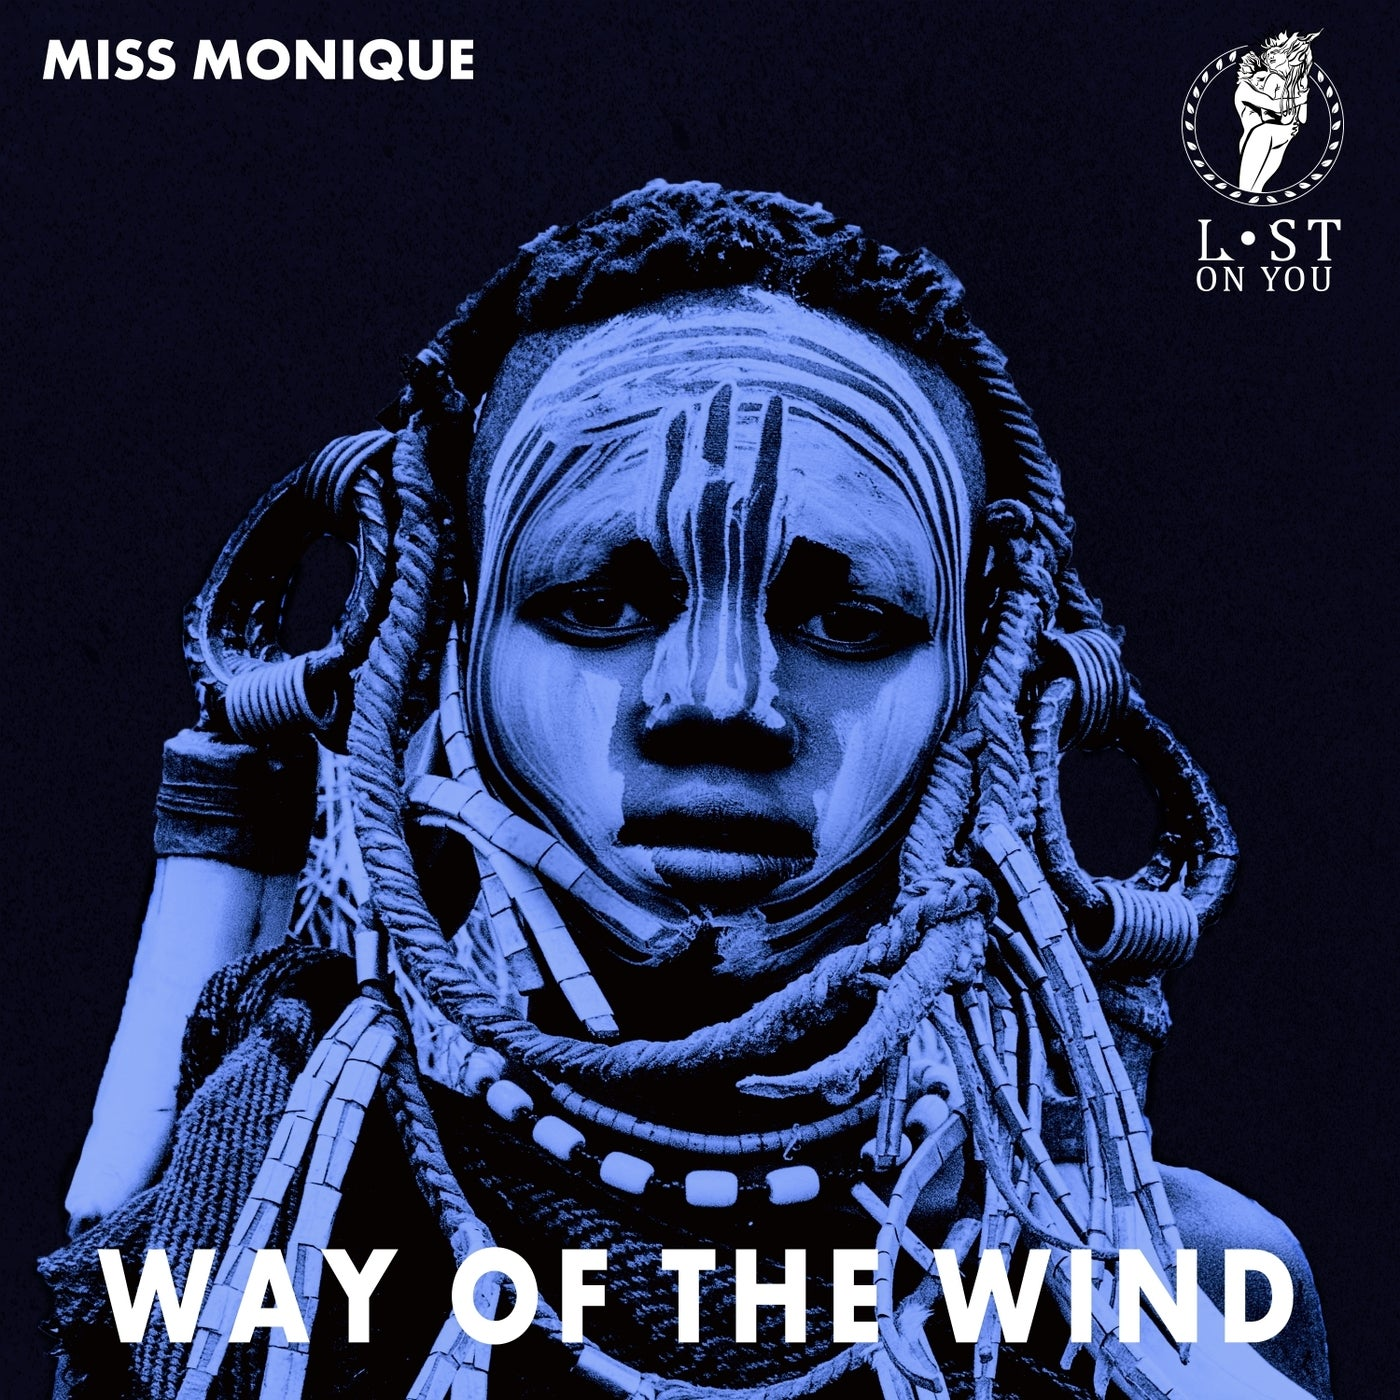 Way of the Wind (Original Mix)